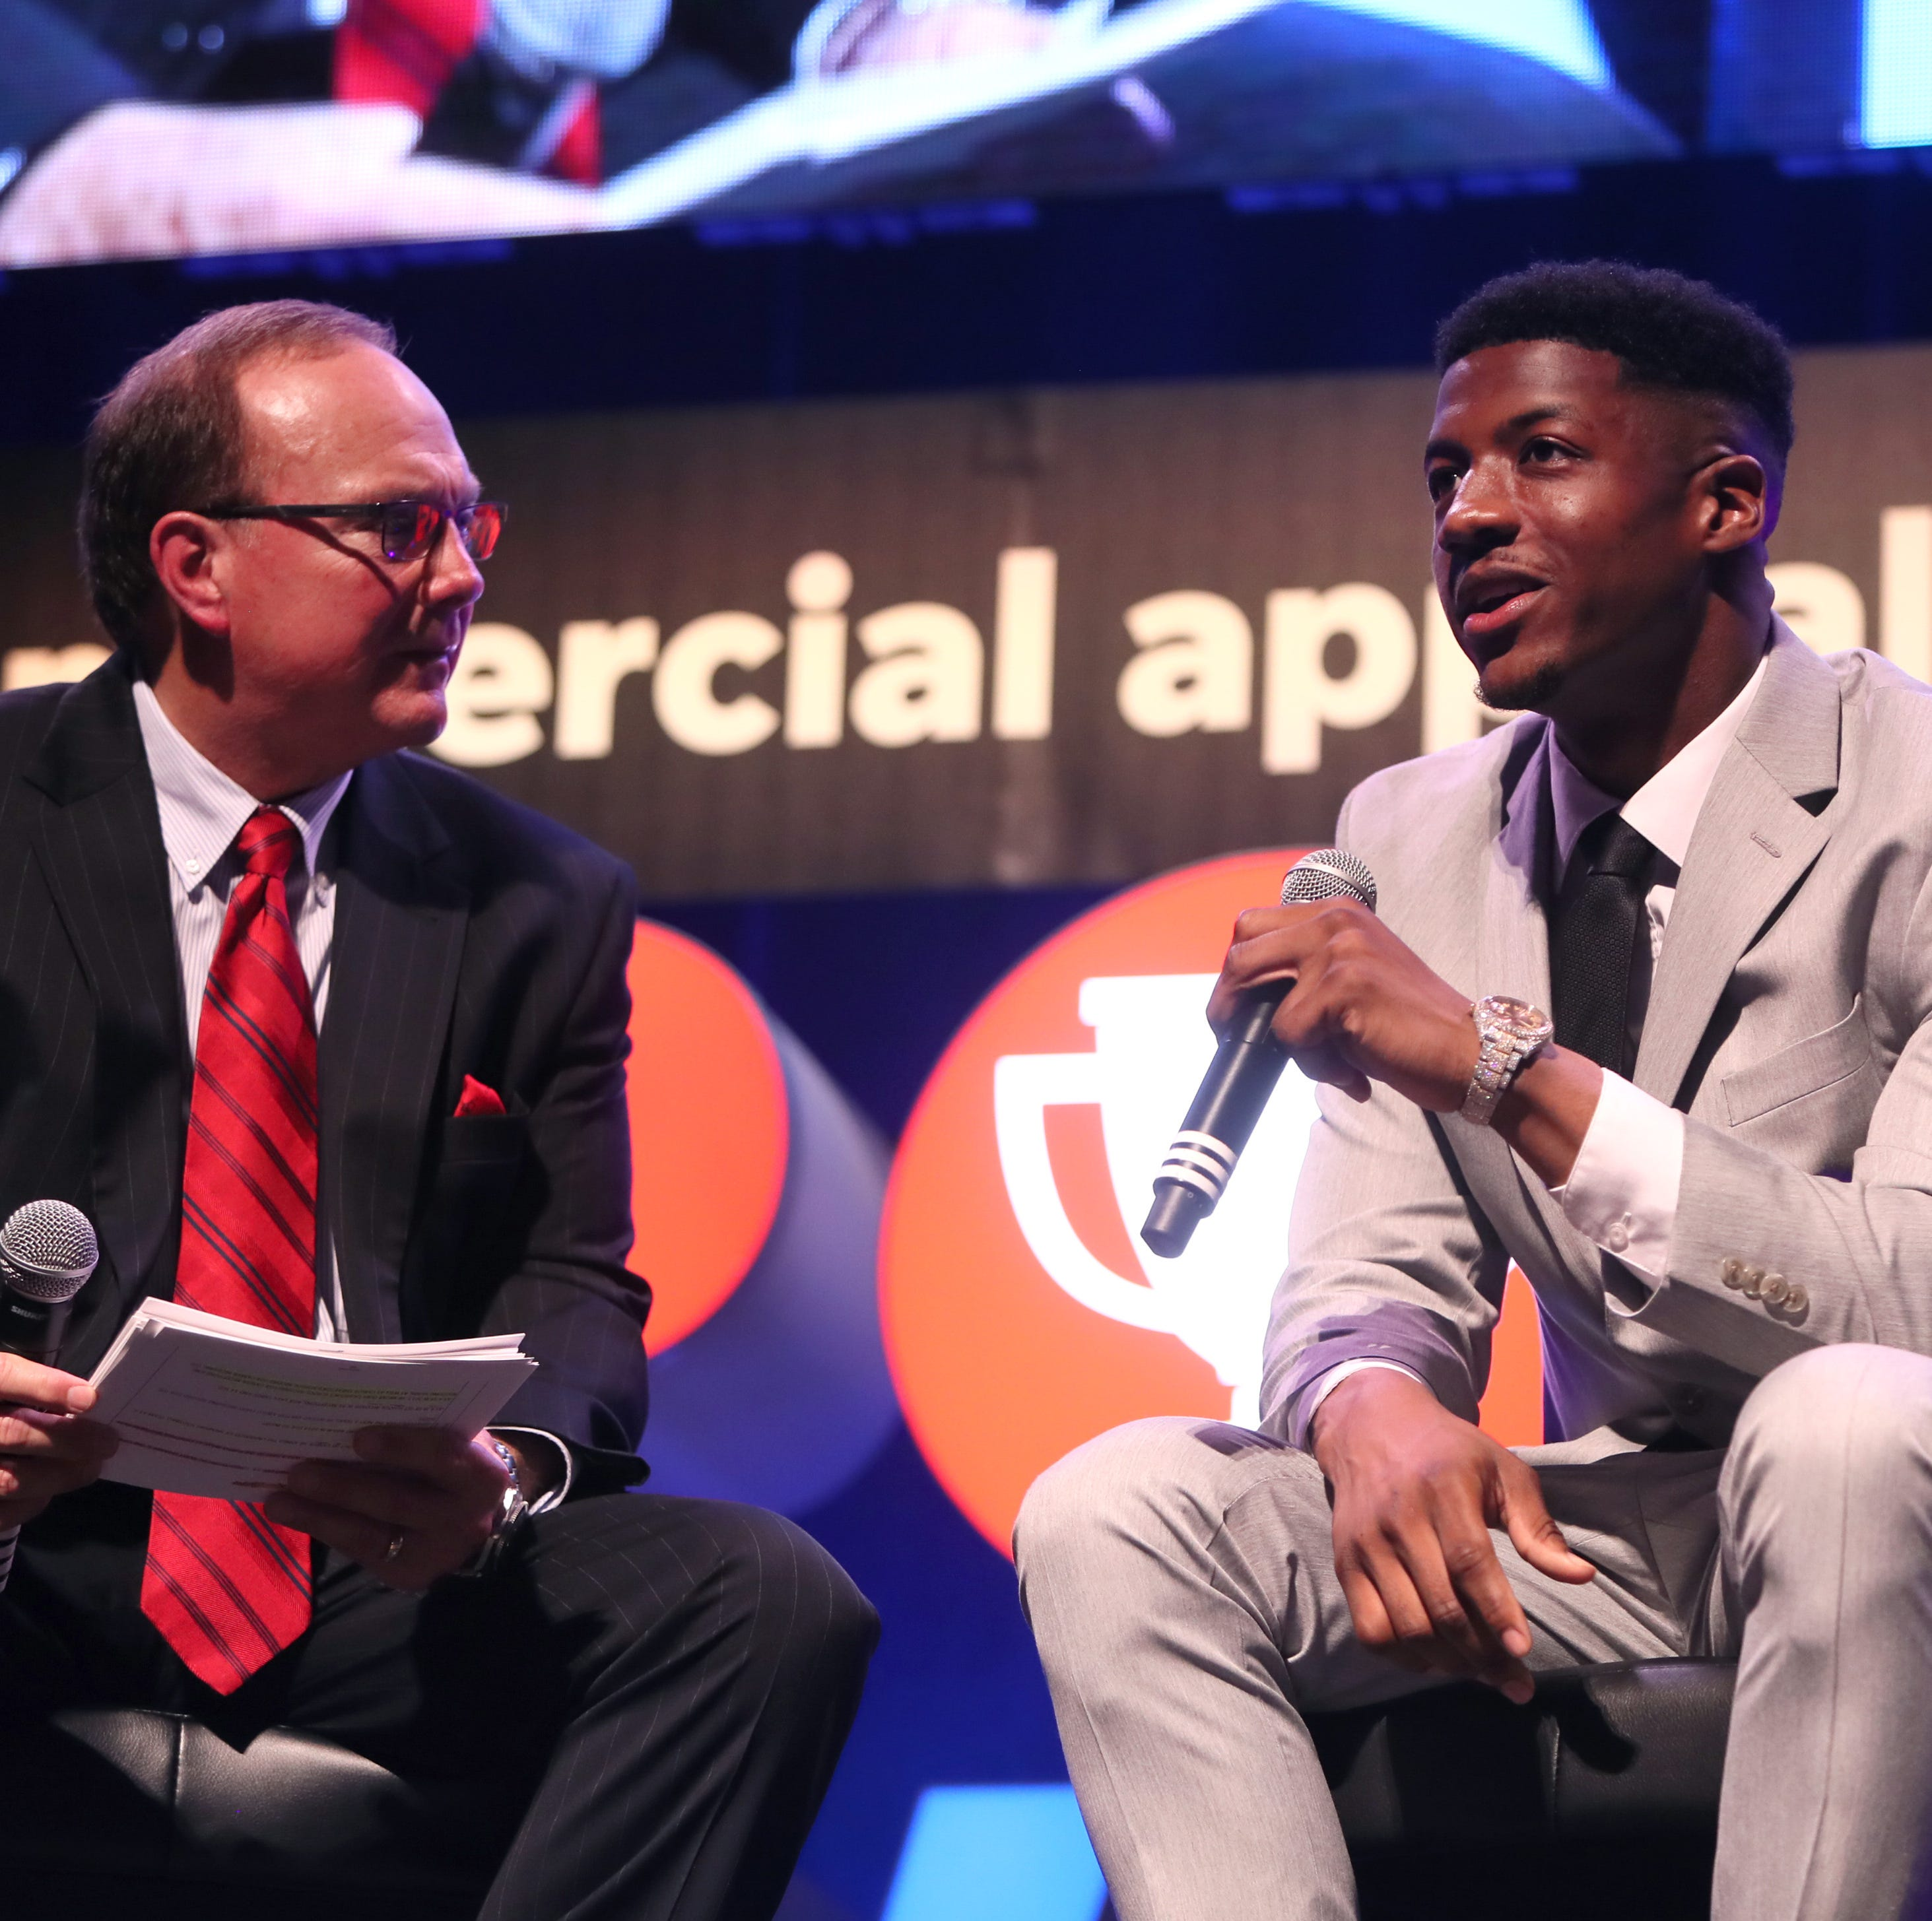 Chicago Bears, former Memphis WR Anthony Miller inspires at Commercial Appeal Sports Awards